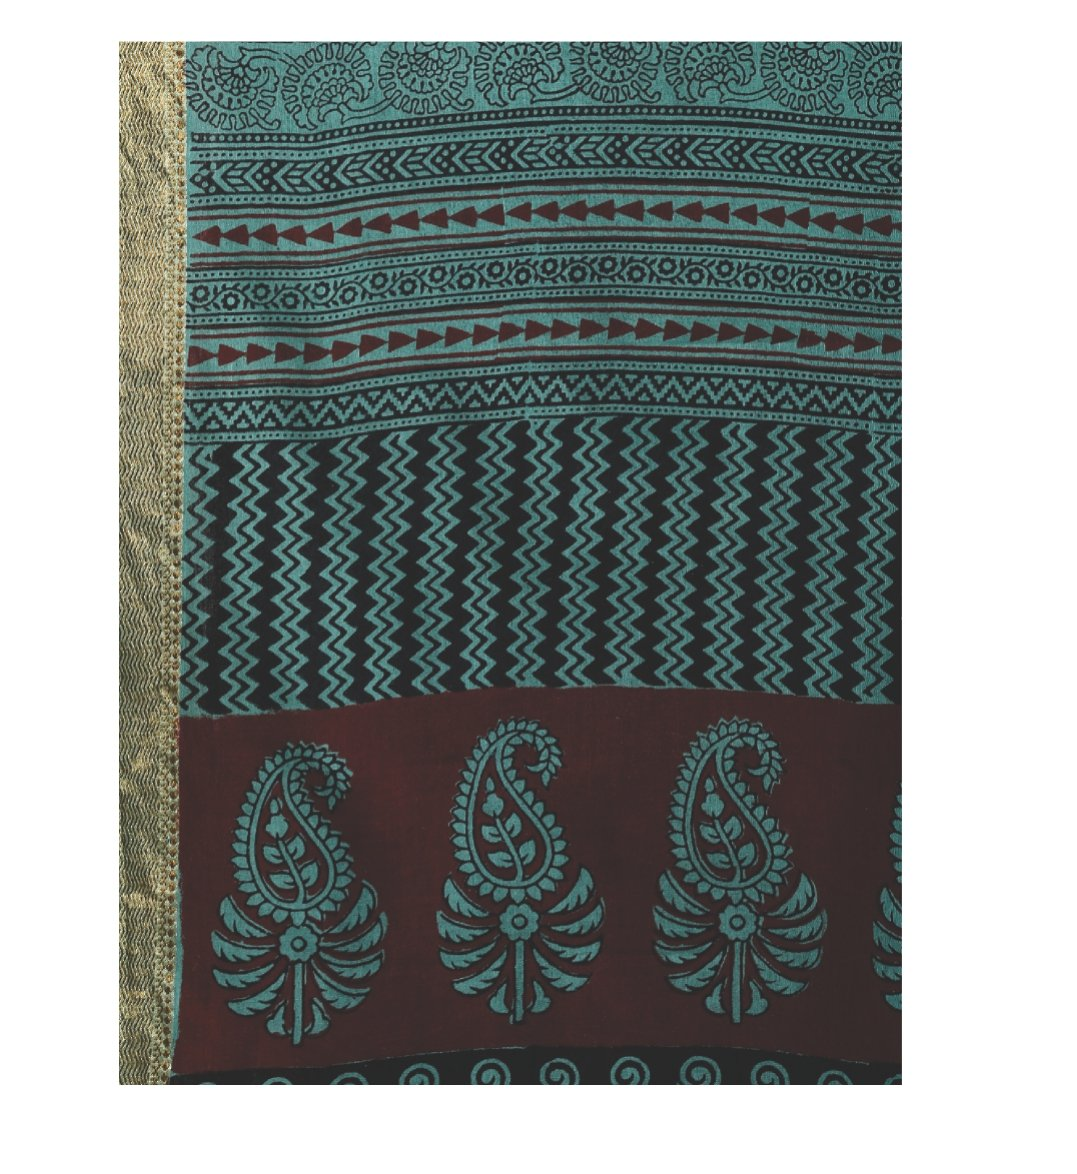 Teal Green Cotton Hand Block Bagh Print Handcrafted Saree-Saree-Kalakari India-ZIBASA0049-Bagh, Cotton, Geographical Indication, Hand Blocks, Hand Crafted, Heritage Prints, Natural Dyes, Sarees, Sustainable Fabrics-[Linen,Ethnic,wear,Fashionista,Handloom,Handicraft,Indigo,blockprint,block,print,Cotton,Chanderi,Blue, latest,classy,party,bollywood,trendy,summer,style,traditional,formal,elegant,unique,style,hand,block,print, dabu,booti,gift,present,glamorous,affordable,collectible,Sari,Saree,printe